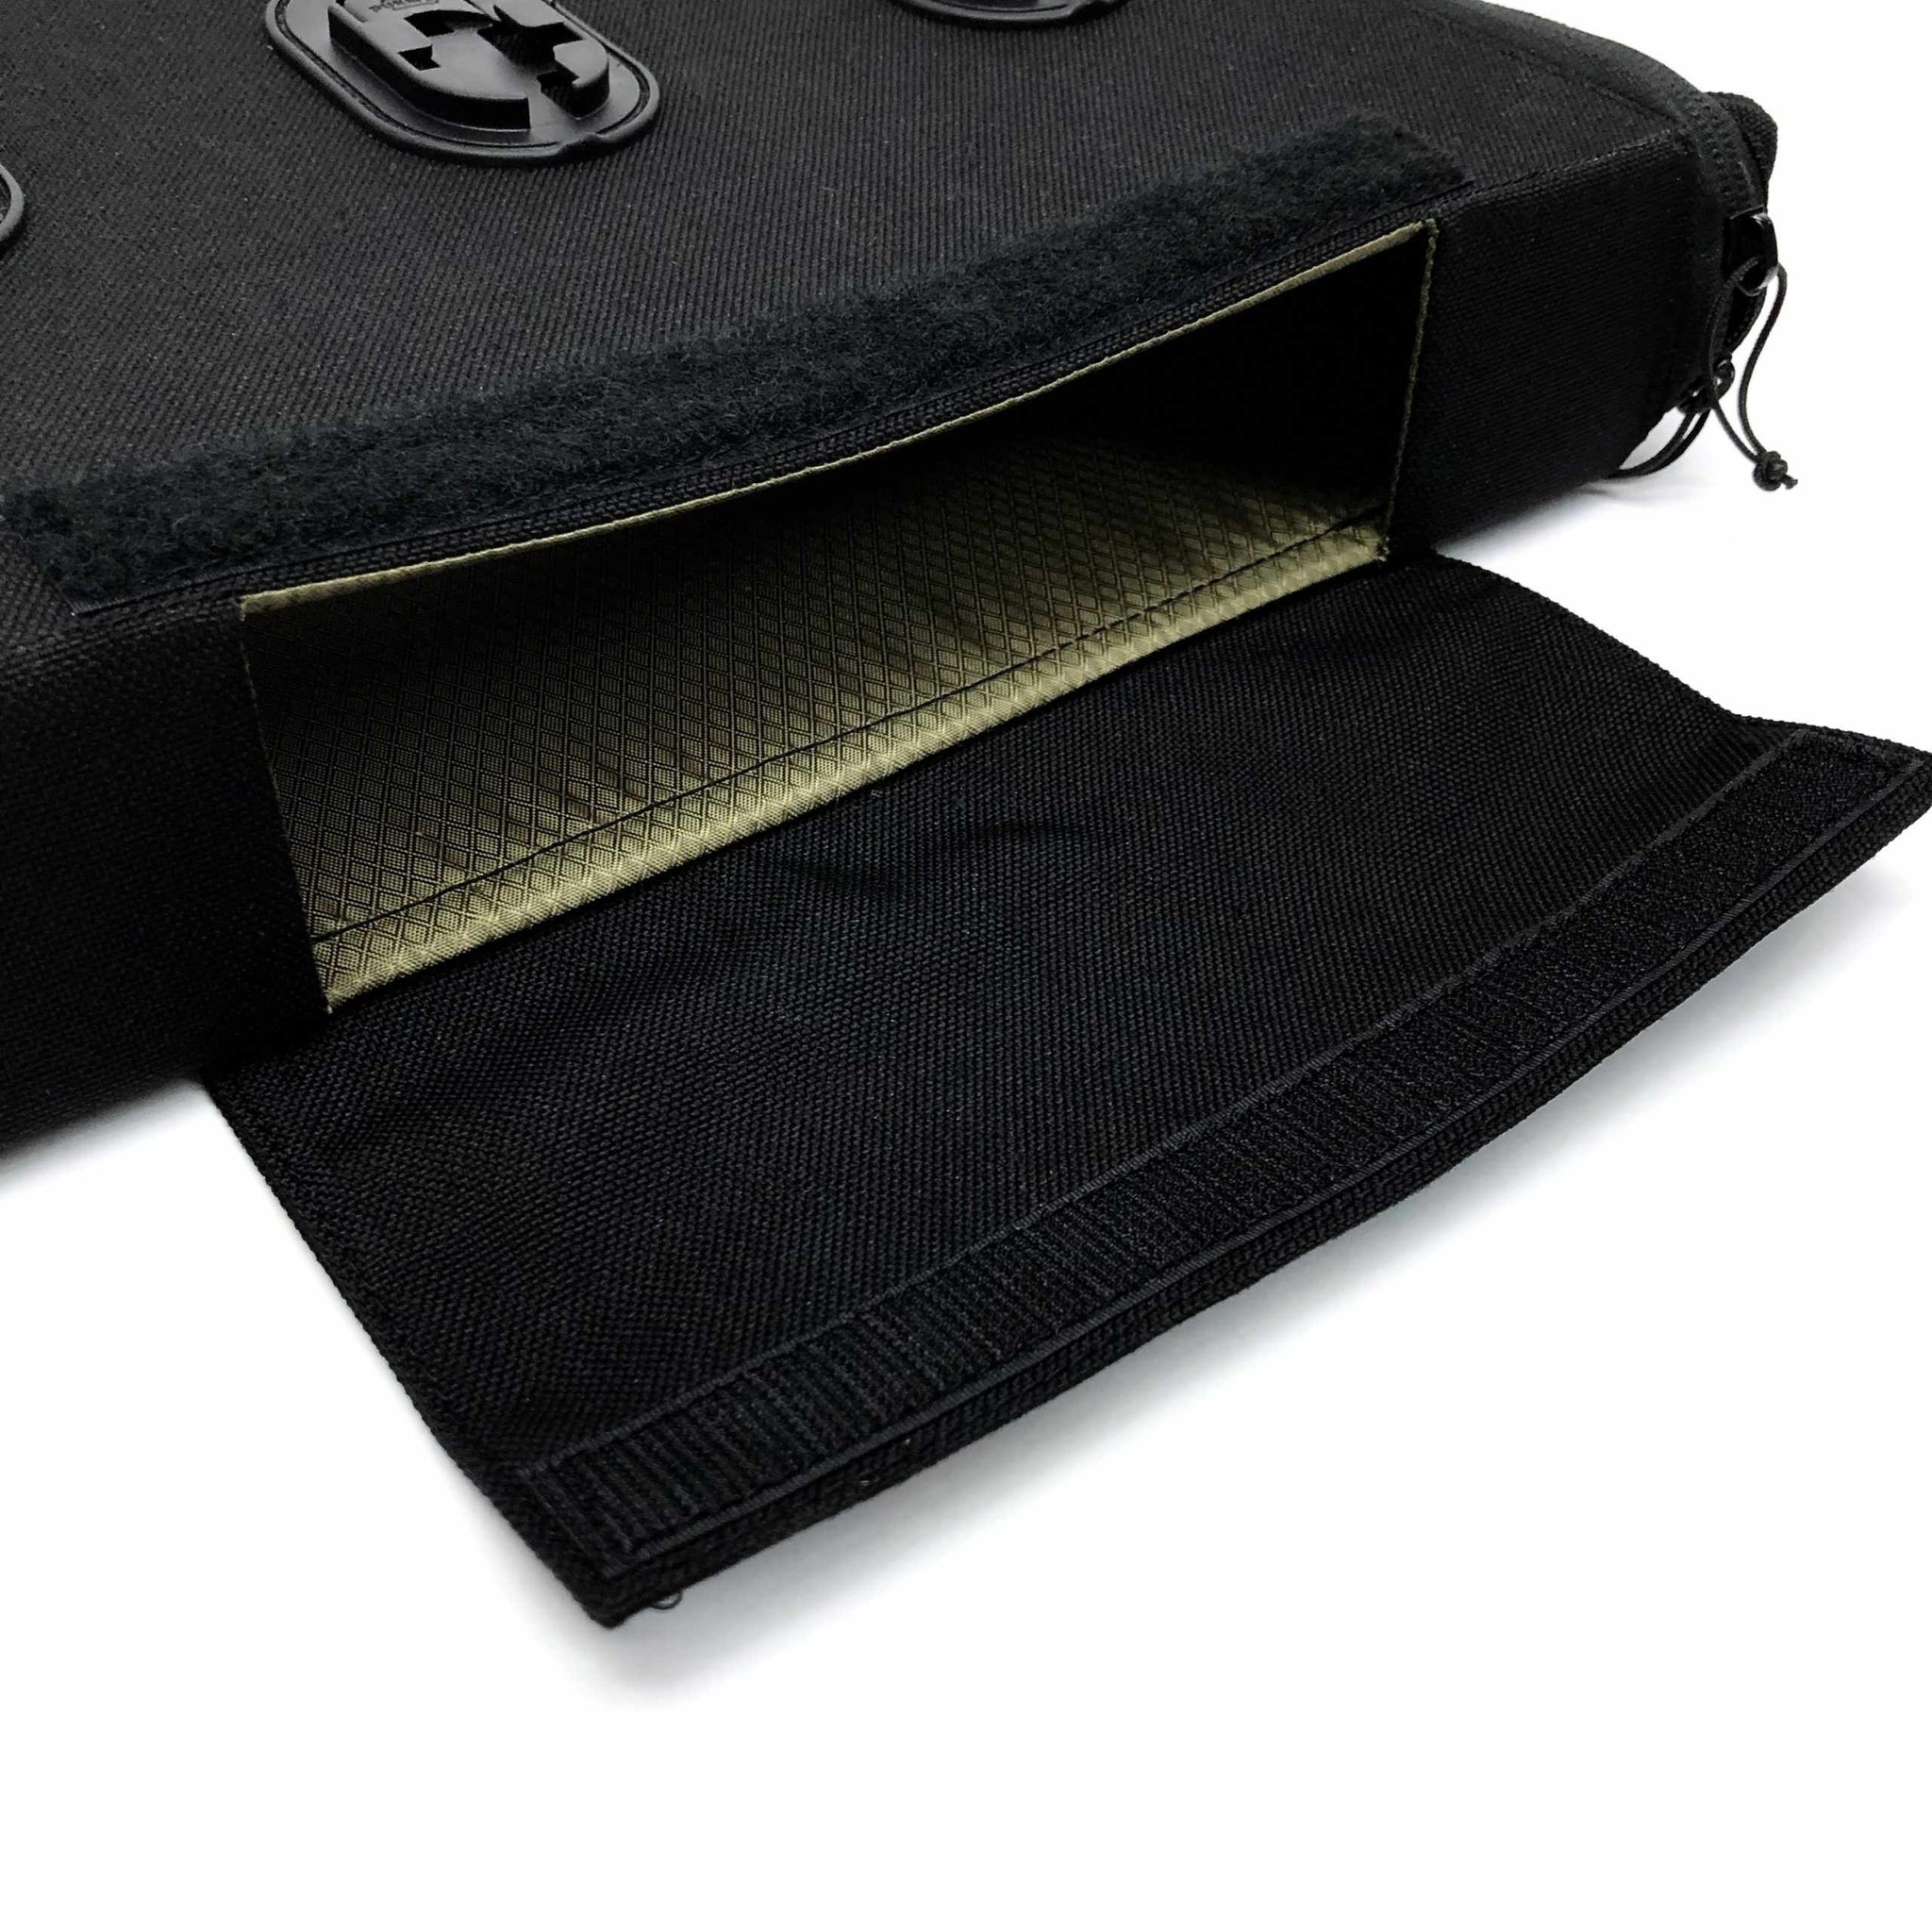 Protogear Protogear – Pro-M Sound Bag Medium